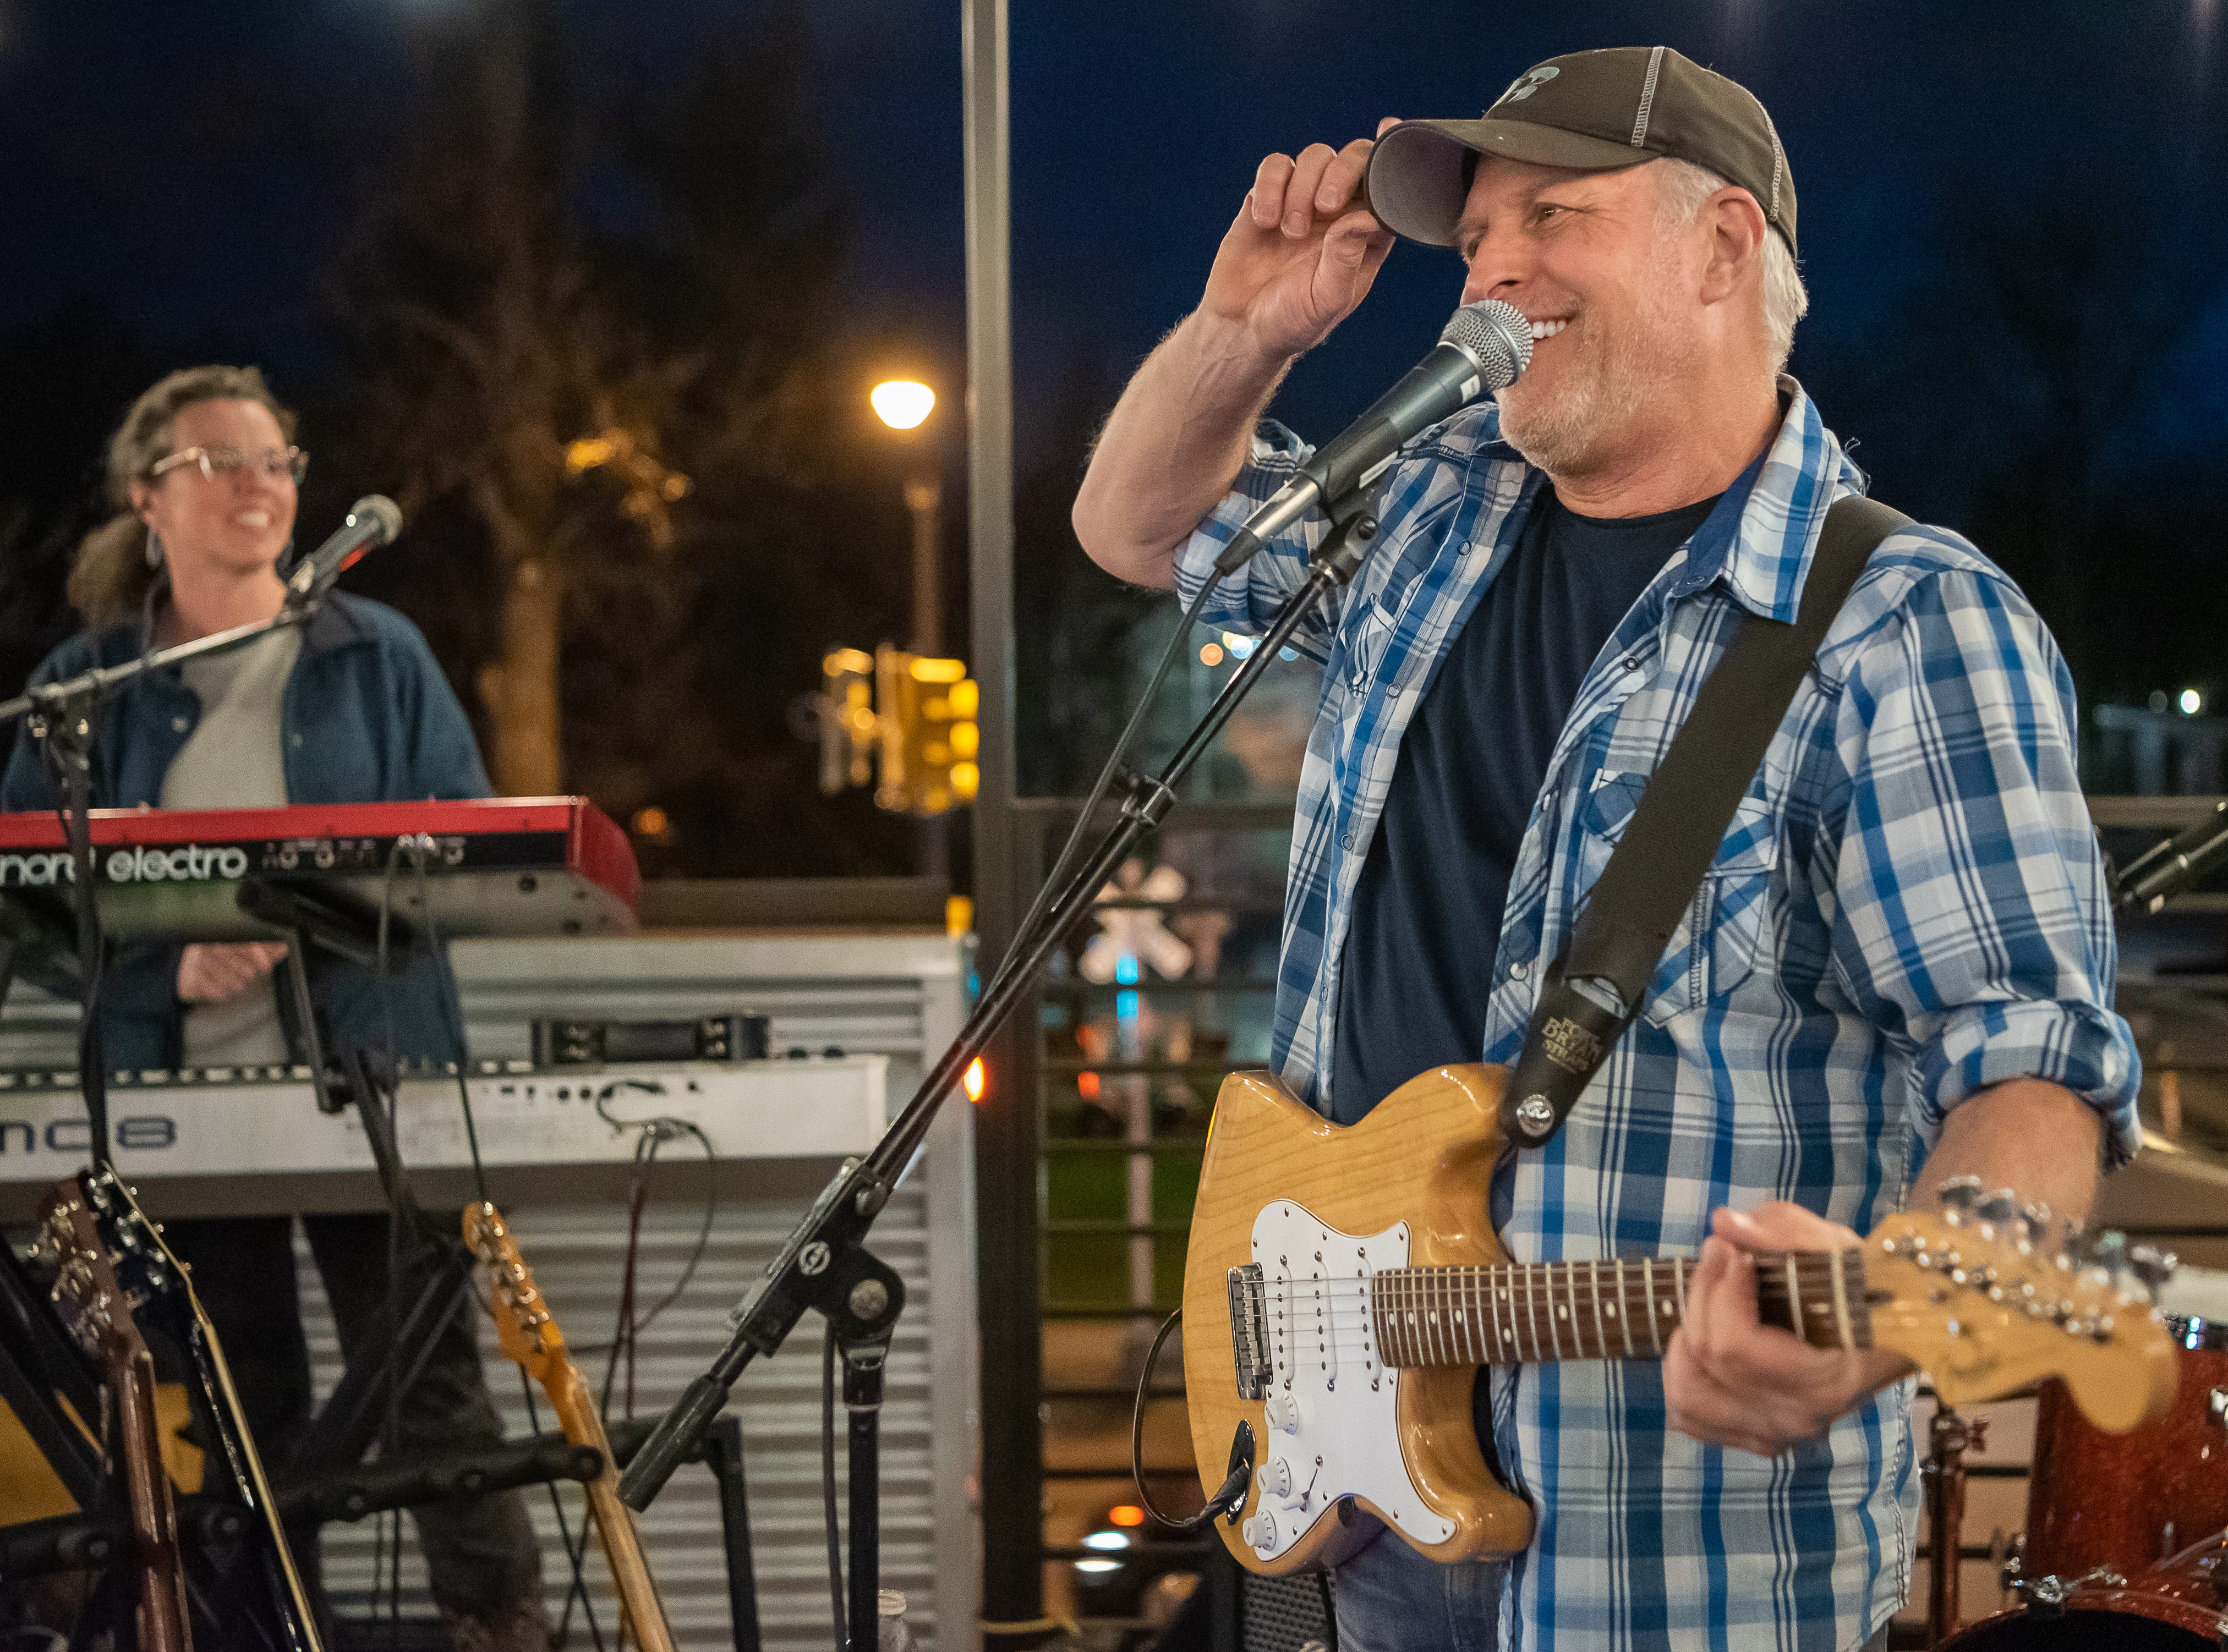 Steve Manshel performs at Metro Urban Food and Booze during the FoCoMX XI music festival on Friday, April 26, 2019, in Fort Collins, Colo.